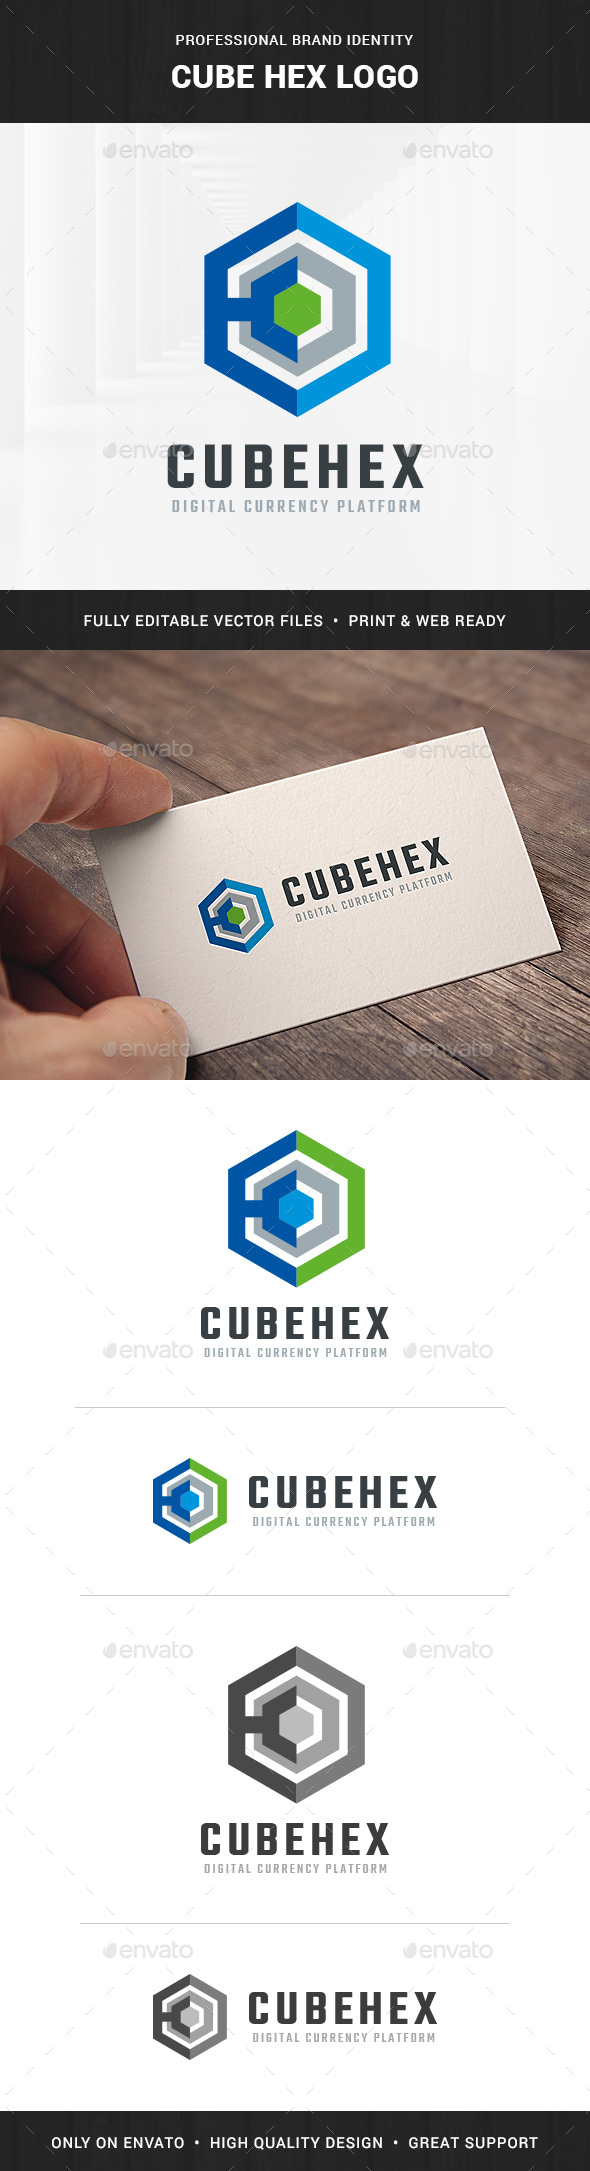 Cube Hex Logo Template - Abstract Logo Templates